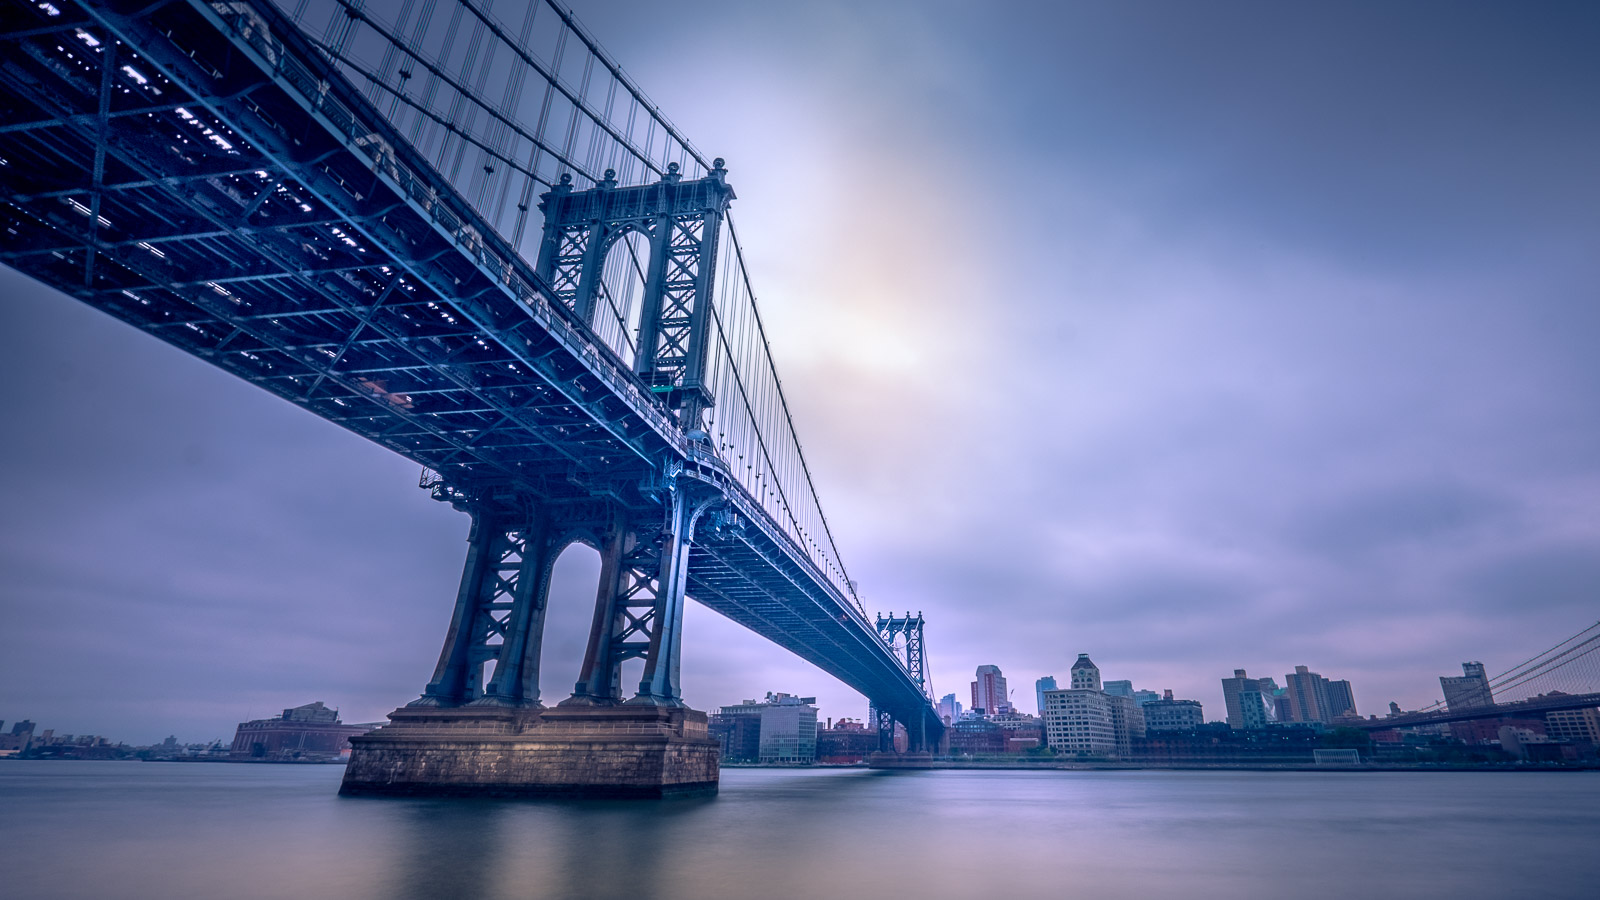 New York City Photography Workshops